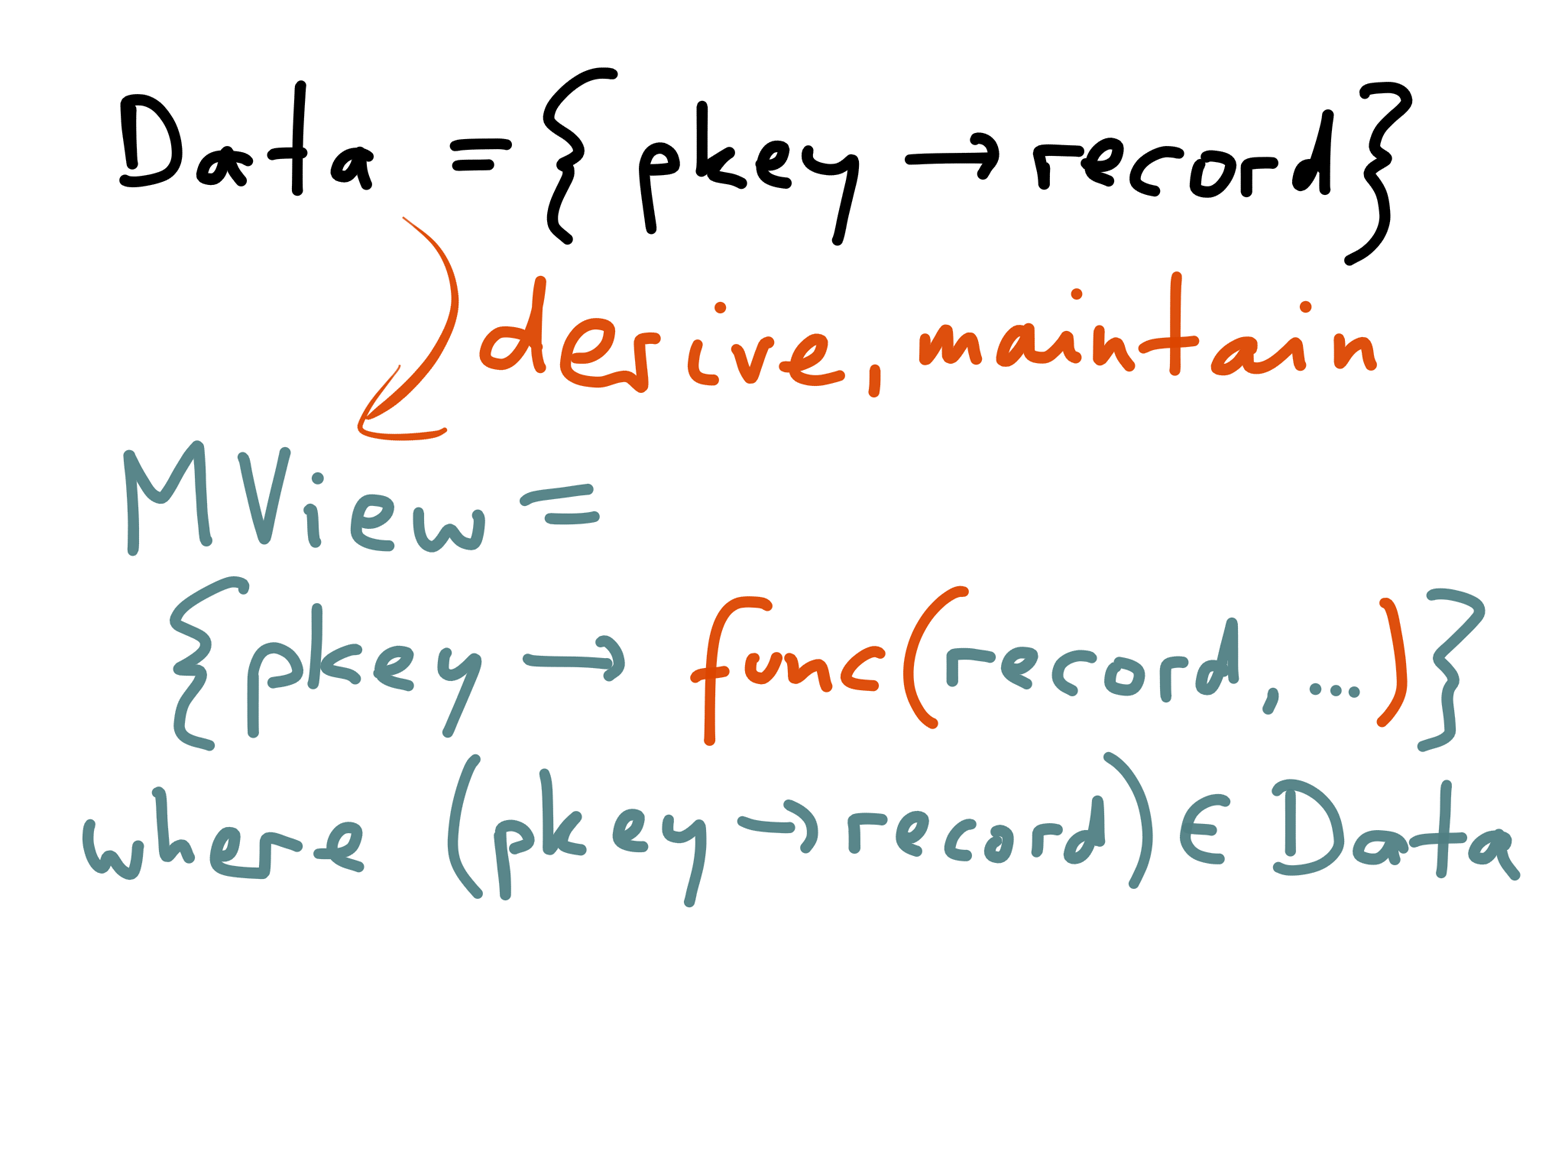 Like caches and secondary indexes, materialized views are also redundant data that is derived from the underlying tables.